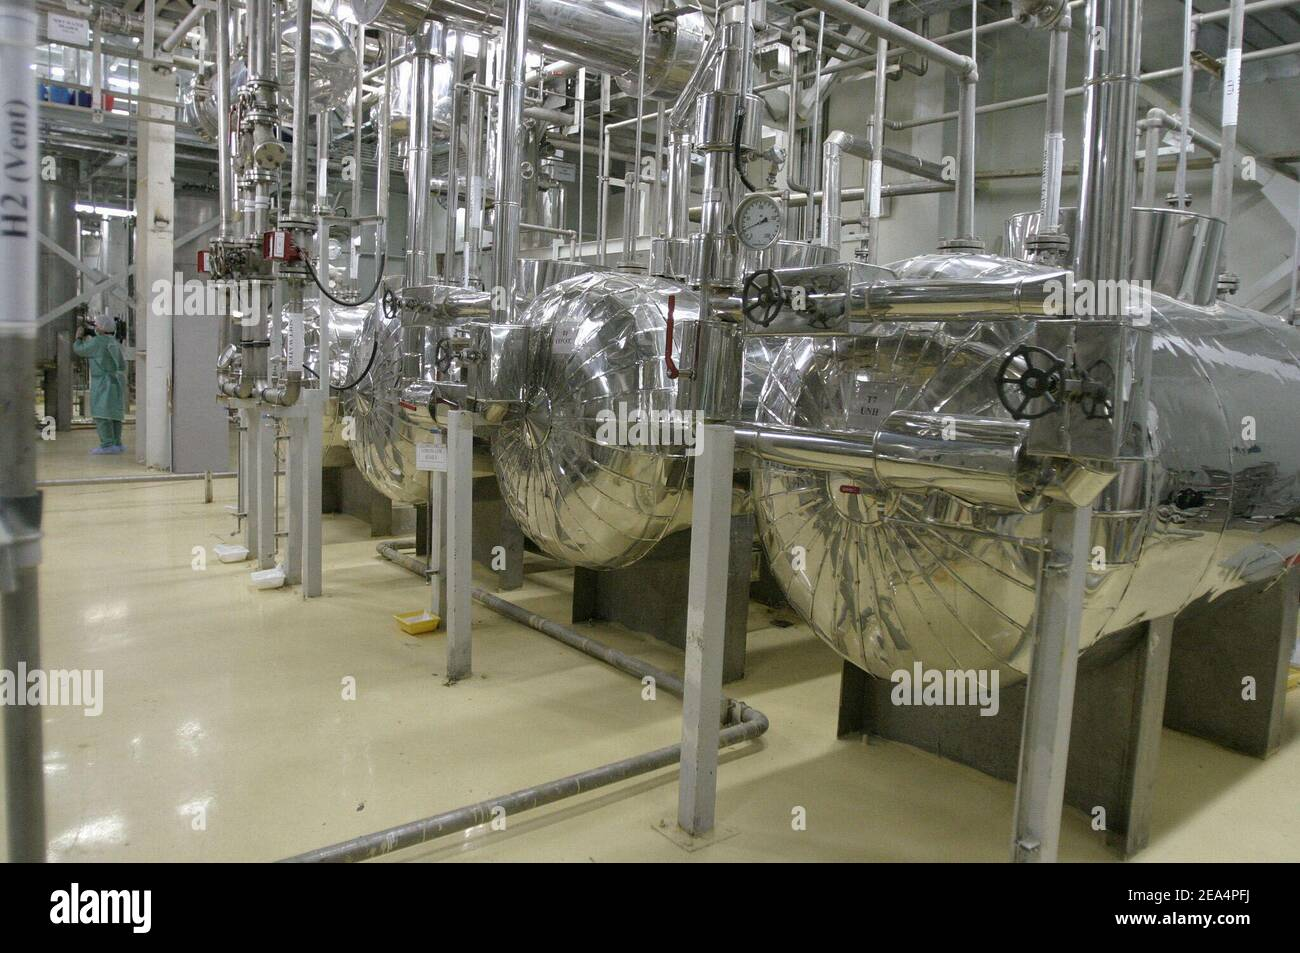 Inside view of the Uranium Conversion Facility (UCF) in Isfahan, Iran, on November 20, 2004. Iran said nuclear processing is set to resume at the Isfahan plant, the largest of its type in the country, on Wednesday. France, Britain and Germany have warned Iran of a major international crisis if the country goes ahead with its plans. Photo by ABACAPRESS.COM. Stock Photo